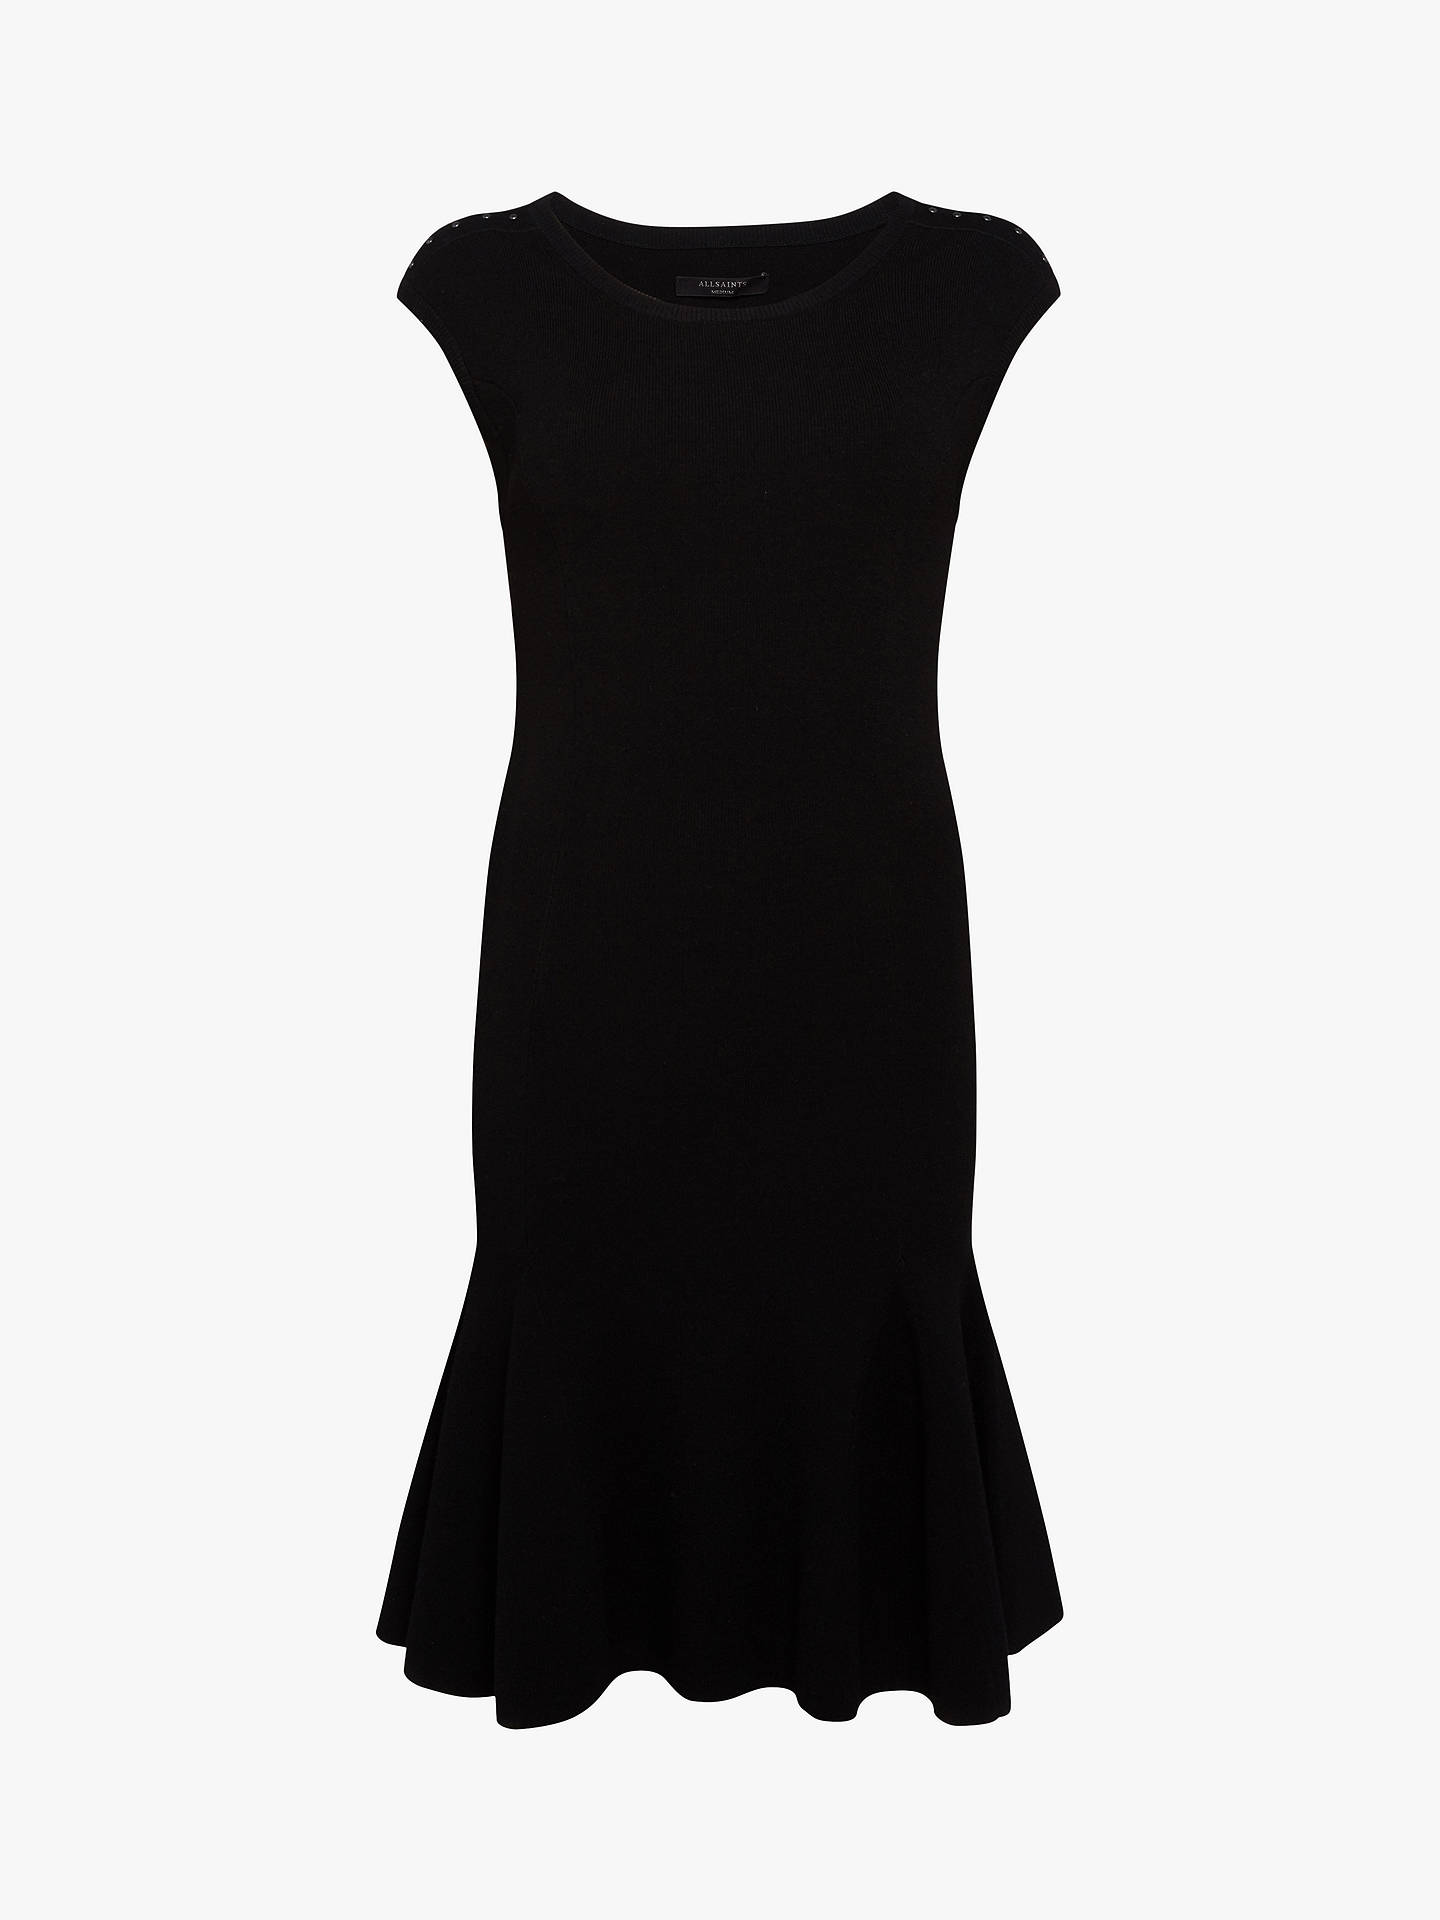 BuyAllSaints Cindy Dress, Black, L Online at johnlewis.com